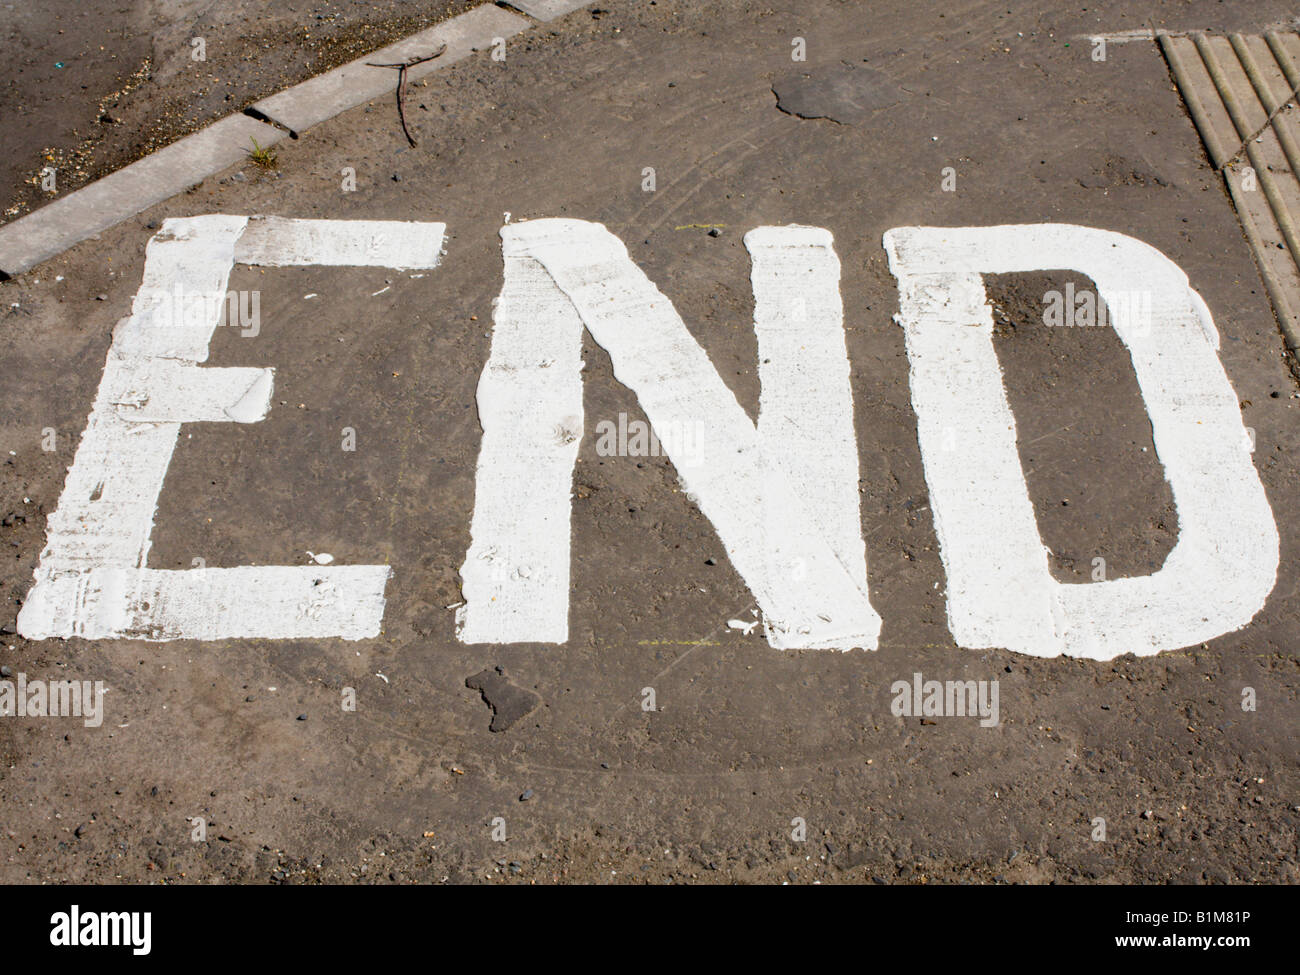 End printed on a pavement Stock Photo